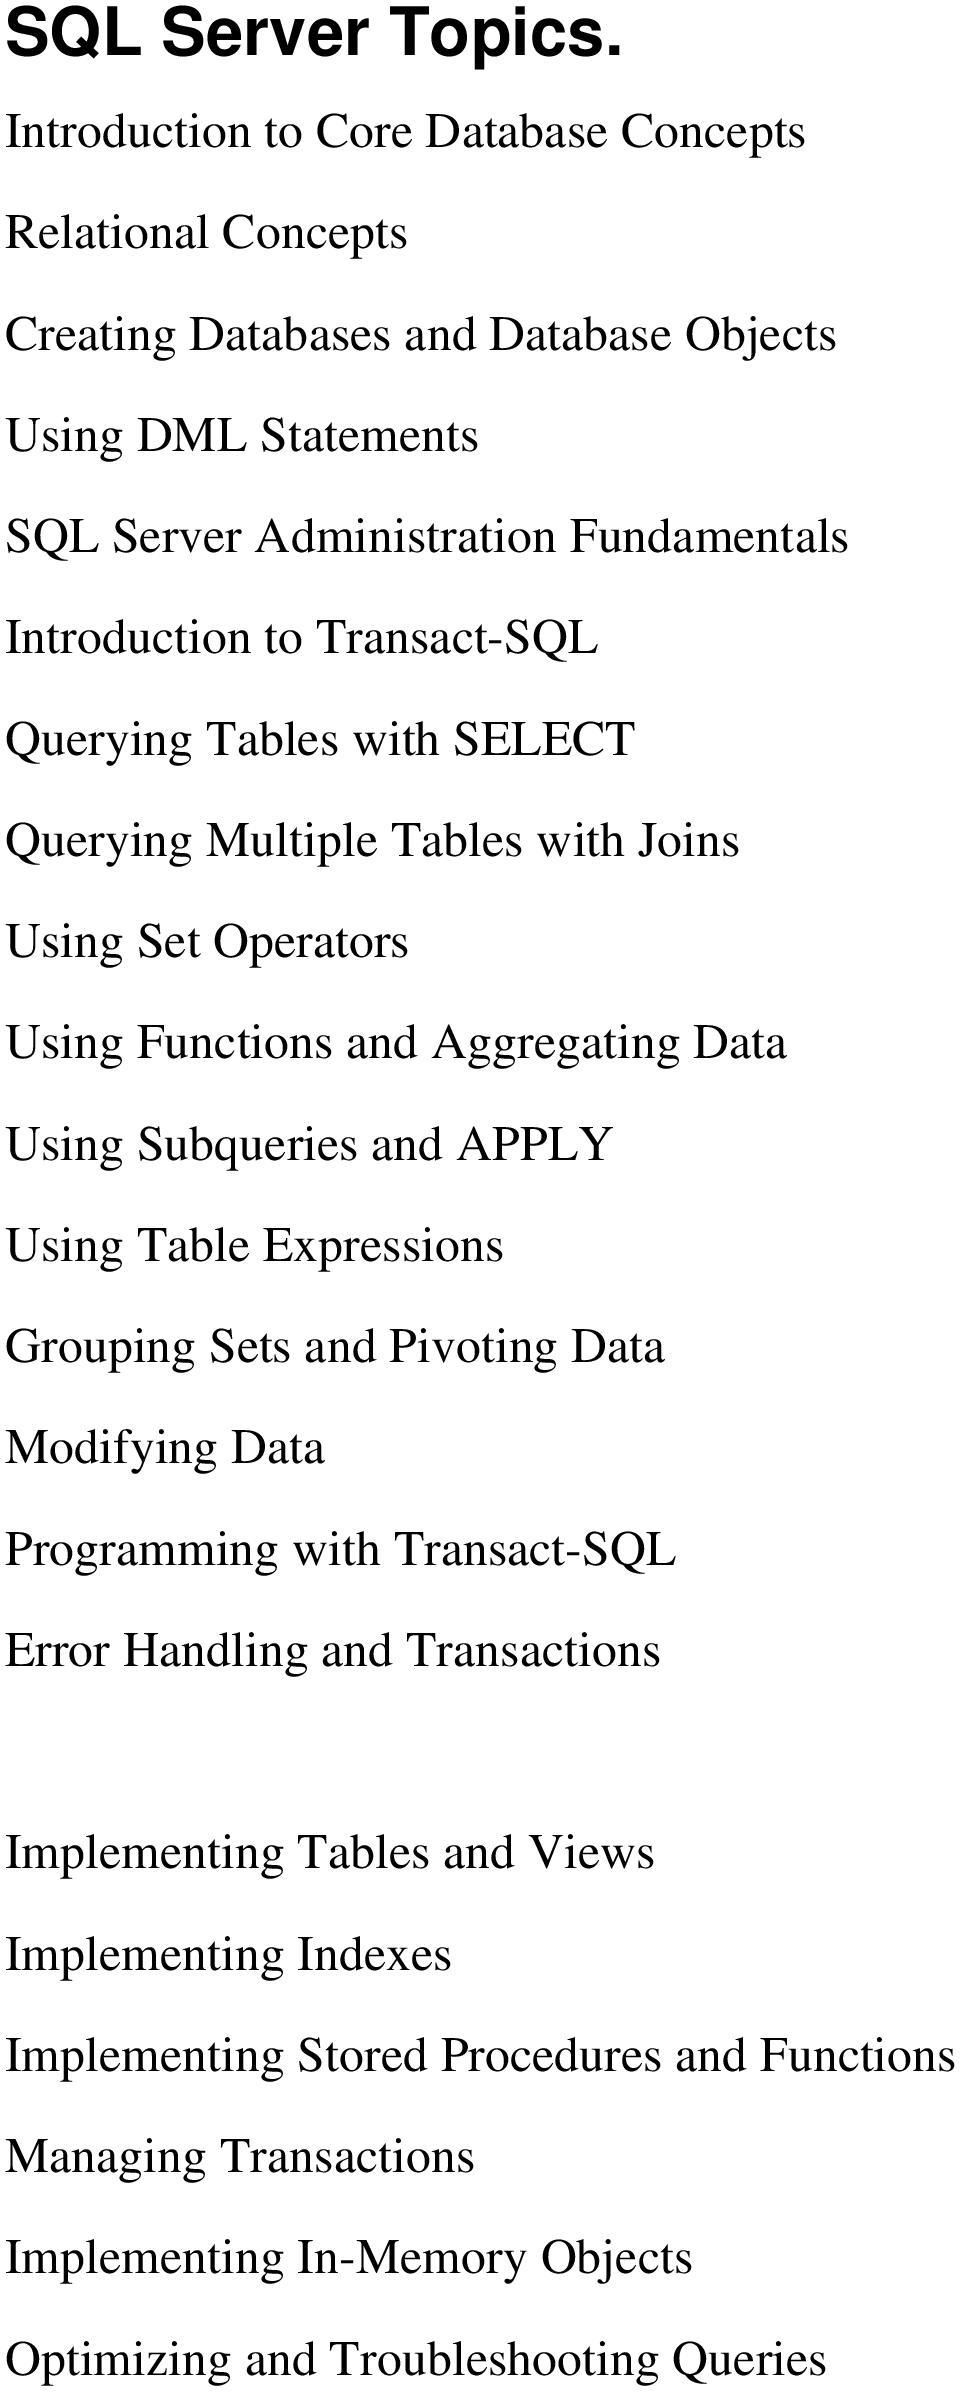 Introduction to Transact SQL Querying Tables with SELECT Querying Multiple Tables with Joins Using Set Operators Using Functions and Aggregating Data Using Subqueries